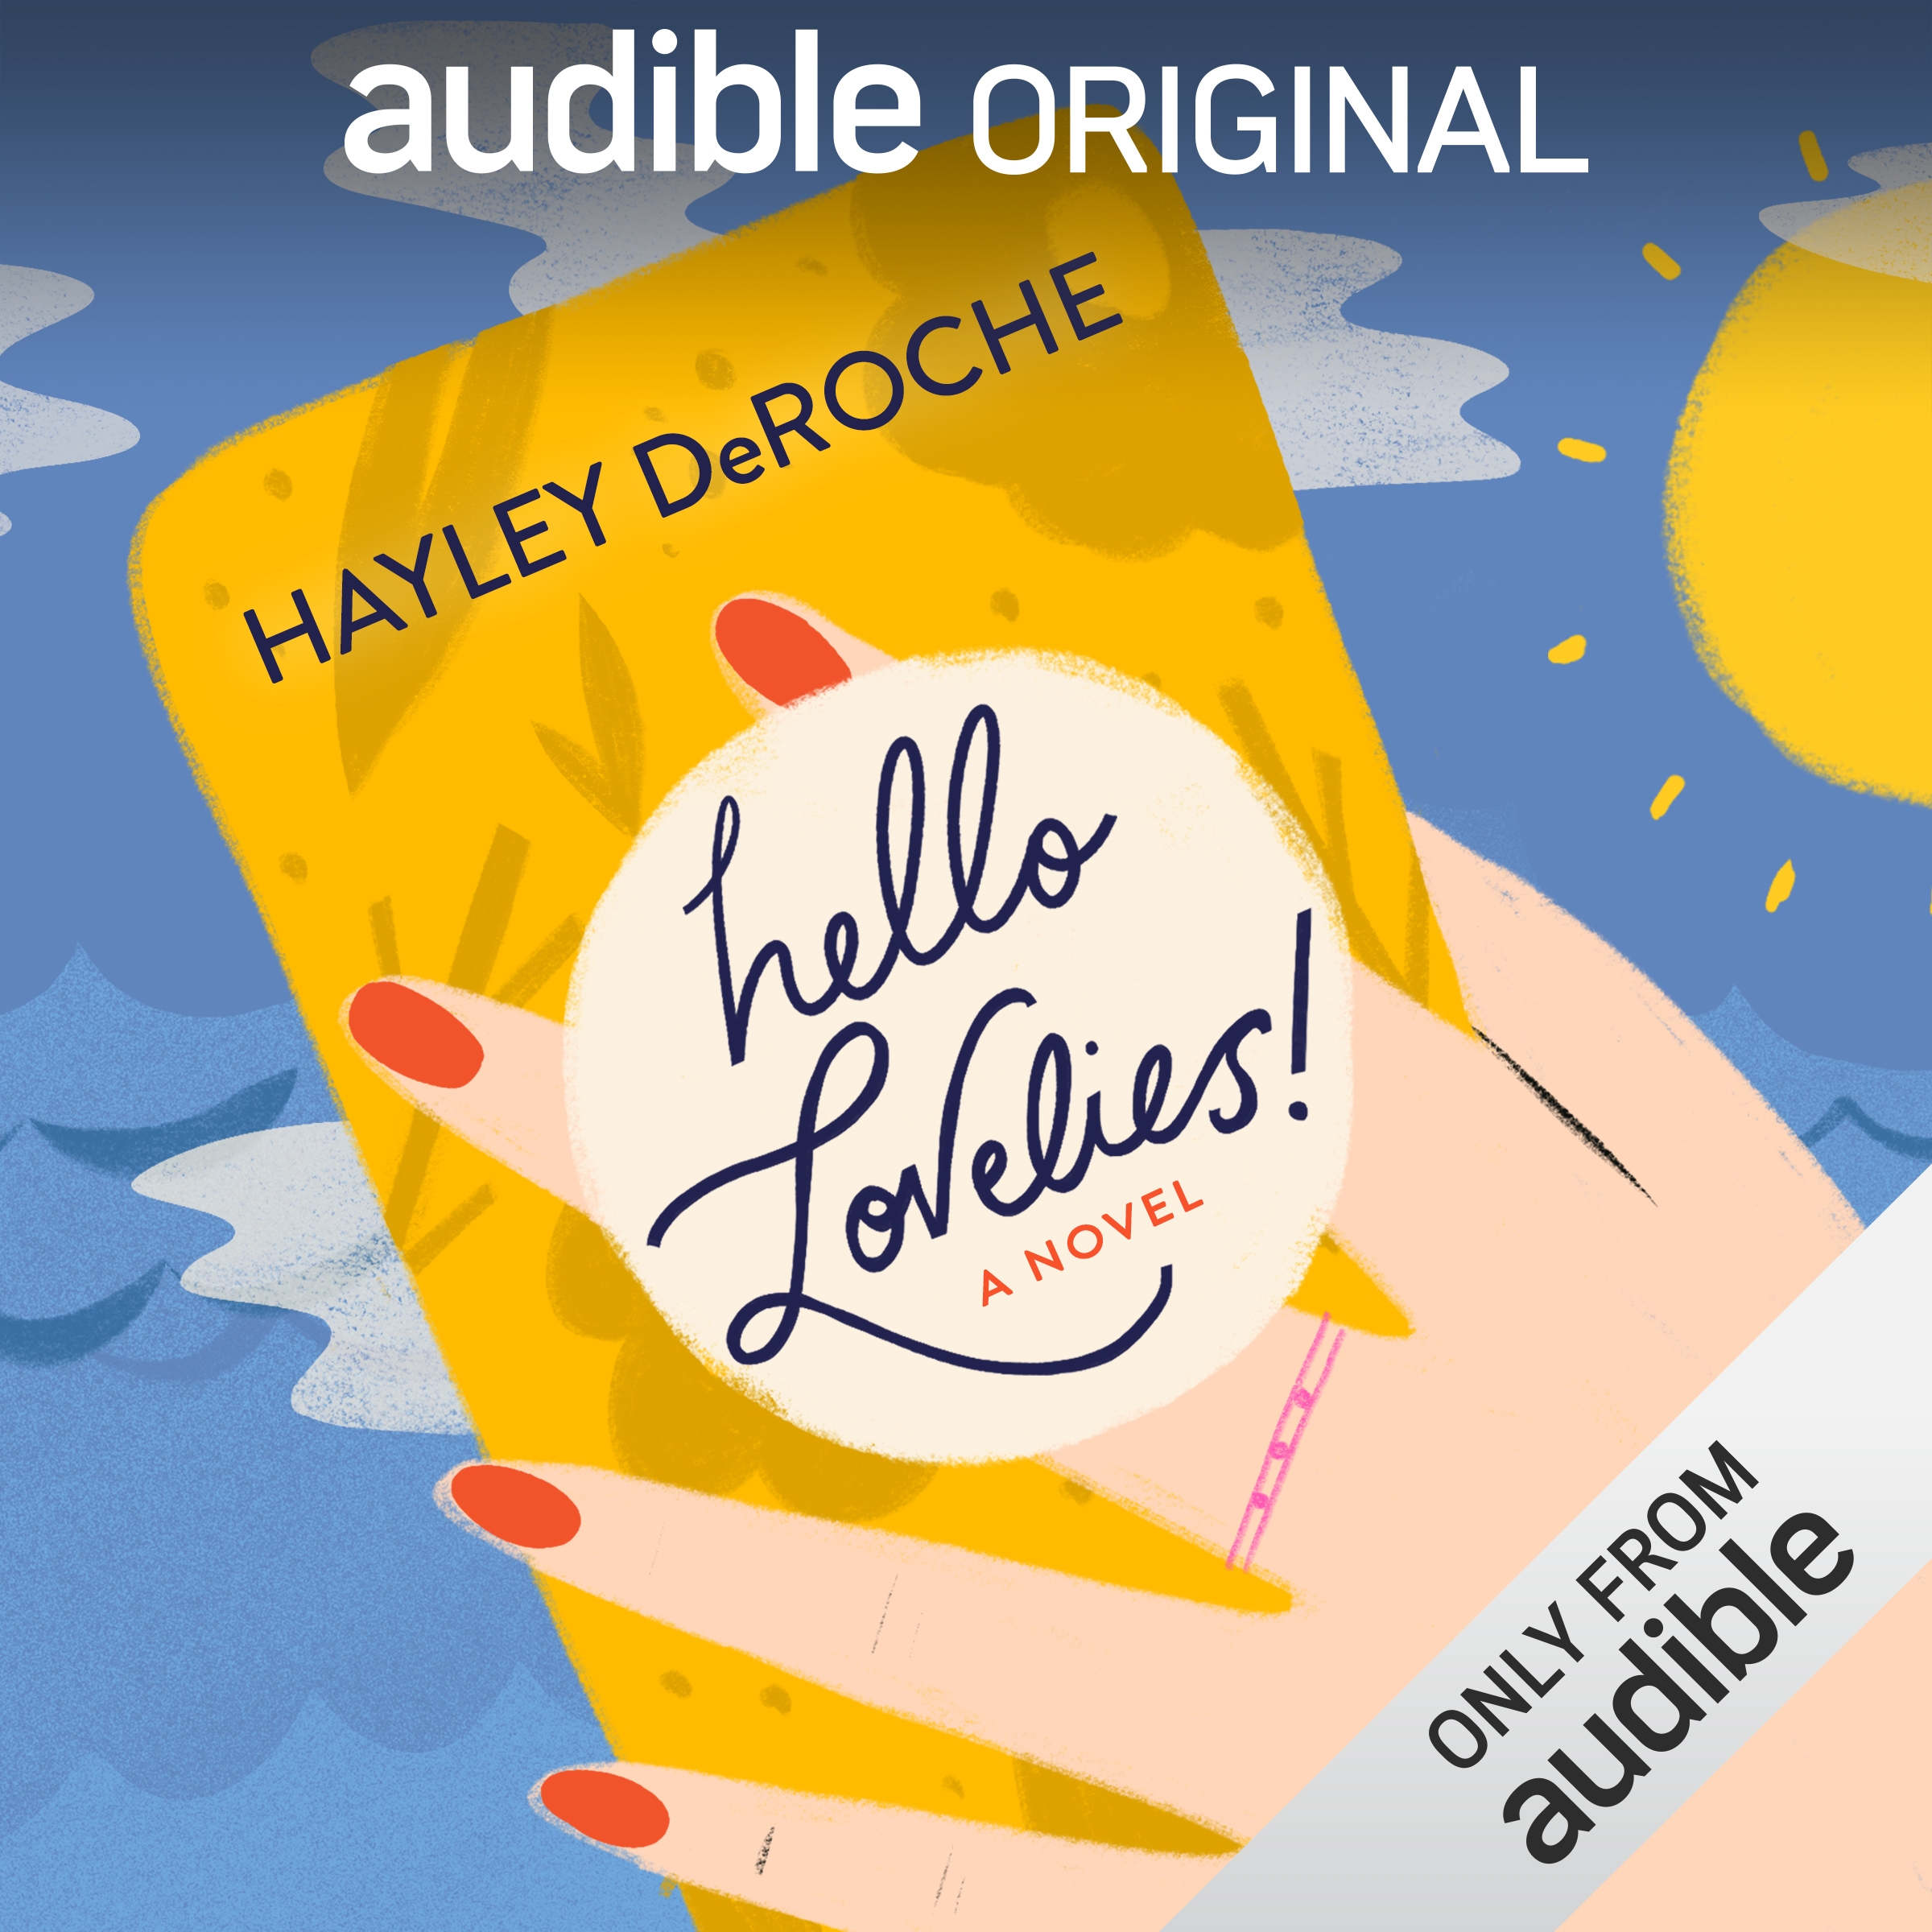 HELLO LOVELIES! - For fans of Sophie Kinsella and Kevin Kwan comes a laugh-out-loud debut that takes listeners inside the cutthroat world of mommy blogging.Ruthie St. James - formerly a political communications strategist, currently a stay-at-home mom, and all of a sudden friendless after her daughter's peanut butter cookie sends another toddler to the hospital - needs a break. And when she wins an all-expenses paid cruise vacation with her idol, the superstar mommy blogger Jesca Pine, she can't wait to connect with other moms IRL. But the cruise is not the Instagram-worthy getaway Ruthie had in mind: firstly, the other bloggers aren't here to make friends - they're here to impress a major talent agent who's been spotted on the ship, and they'll do just about anything to get her attention. On top of that, someone aboard keeps leaking scandalous (and off-brand) stories to an unforgiving gossip site, and Jesca's losing her followers as quickly as her sanity. All this leaves Ruthie walking on eggshells, and after a scandal of her own, she only has one more chance to salvage her vacation: using her political savvy to negotiate with the team of ruthless saboteurs behind Jesca Pine's demise...Jesca's own teenage daughters.Hello Lovelies! is a joyous, irreverent debut about friendship, motherhood, and what it takes to survive and thrive in today's digital world.©2019 Hayley DeRoche (P)2019 Audible Originals, LLC.Purchase me!Add me to Goodreads!